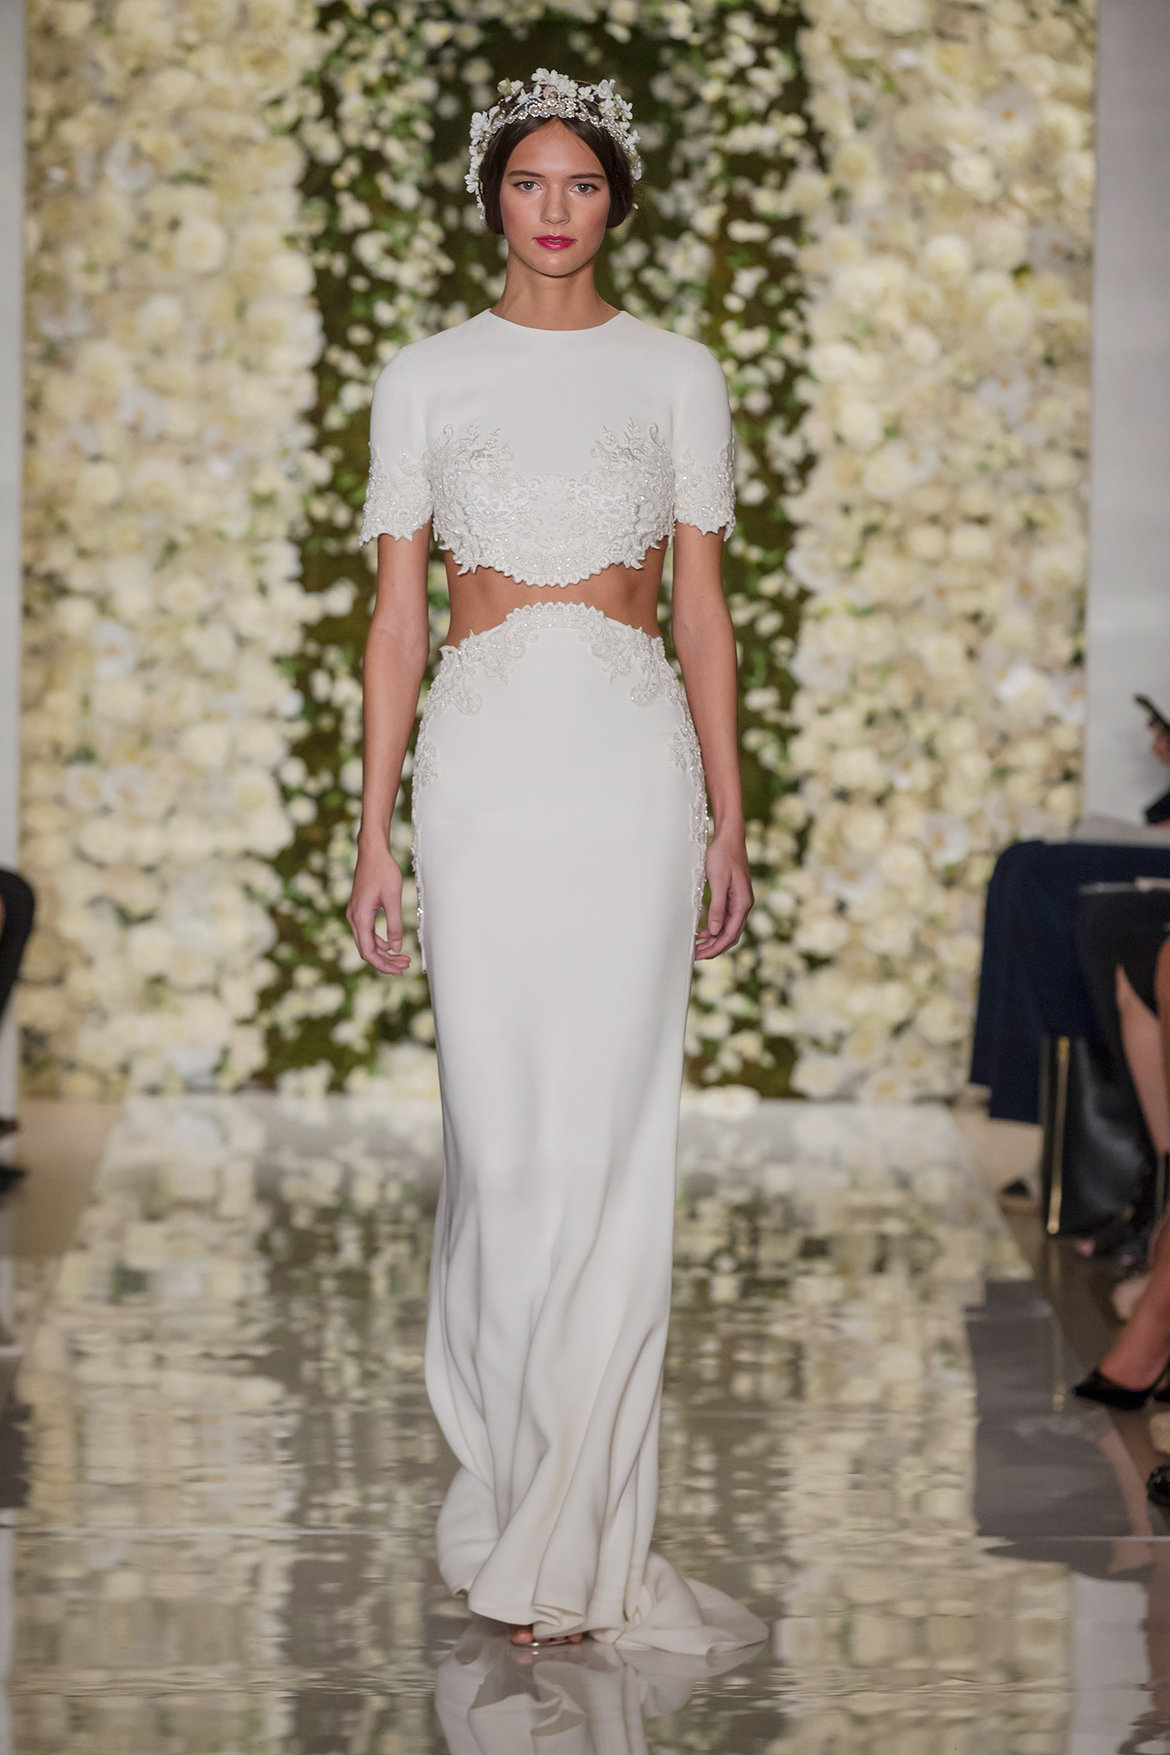 The Biggest Gown Trends from the 2015 Bridal Runway Shows | BridalGuide